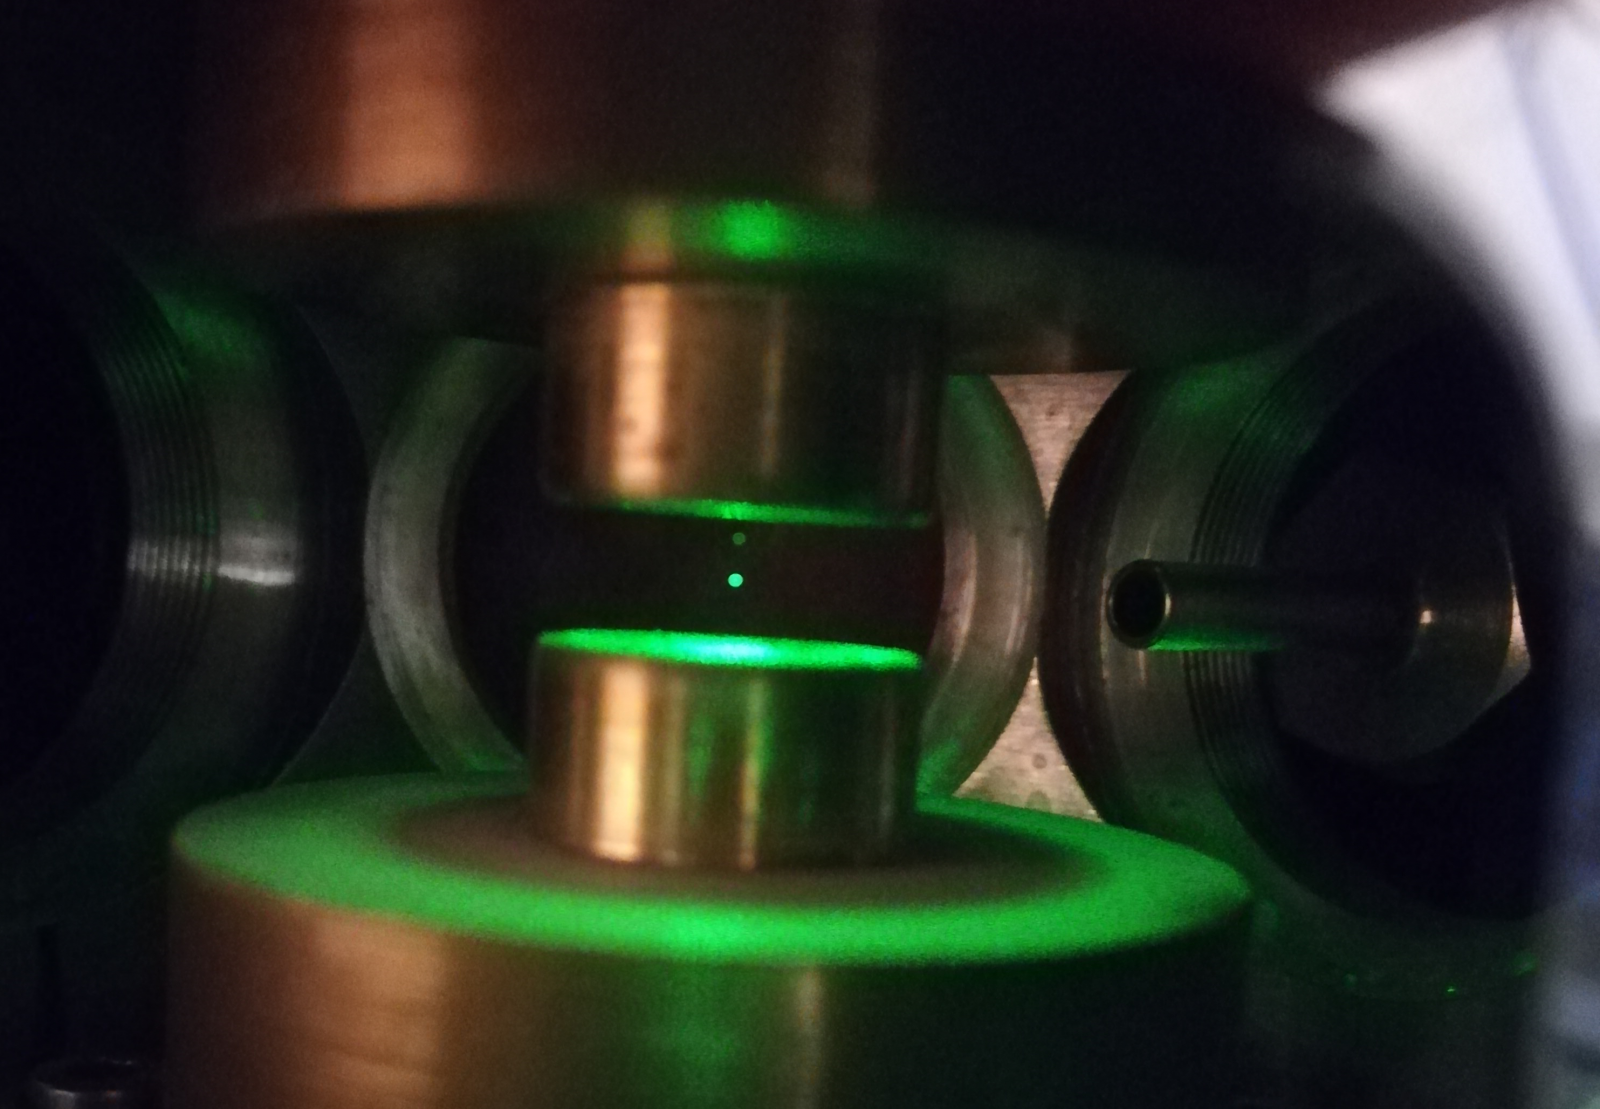 Particle floating in a chamber, illuminated by green laser light.